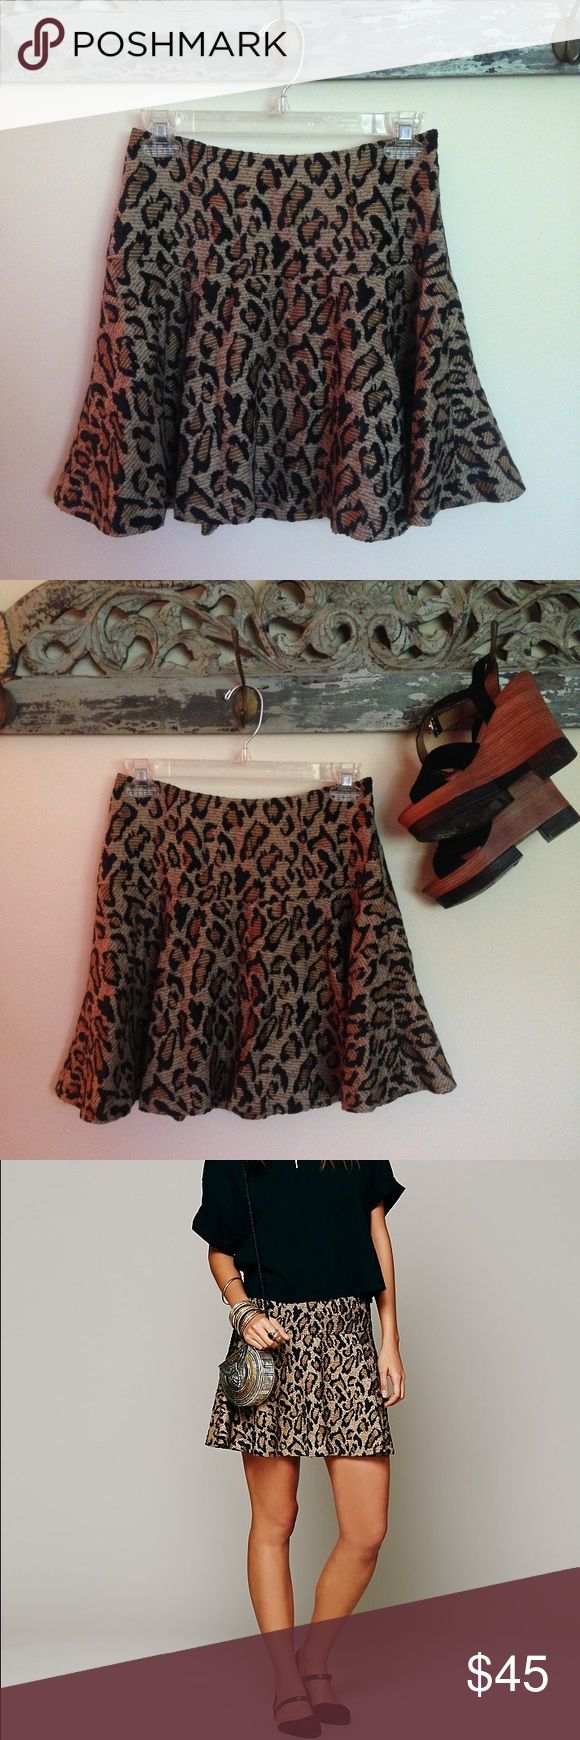 Free People Chenille Cheetah Skirt Super cute and feisty FP skirt. 75% rayon, 25% polyester. 100% cotton lining on waistband. It's a bit loose on me, but I can still model if you'd like 😊 Sorry, no trades!! Free People Skirts Circle & Skater